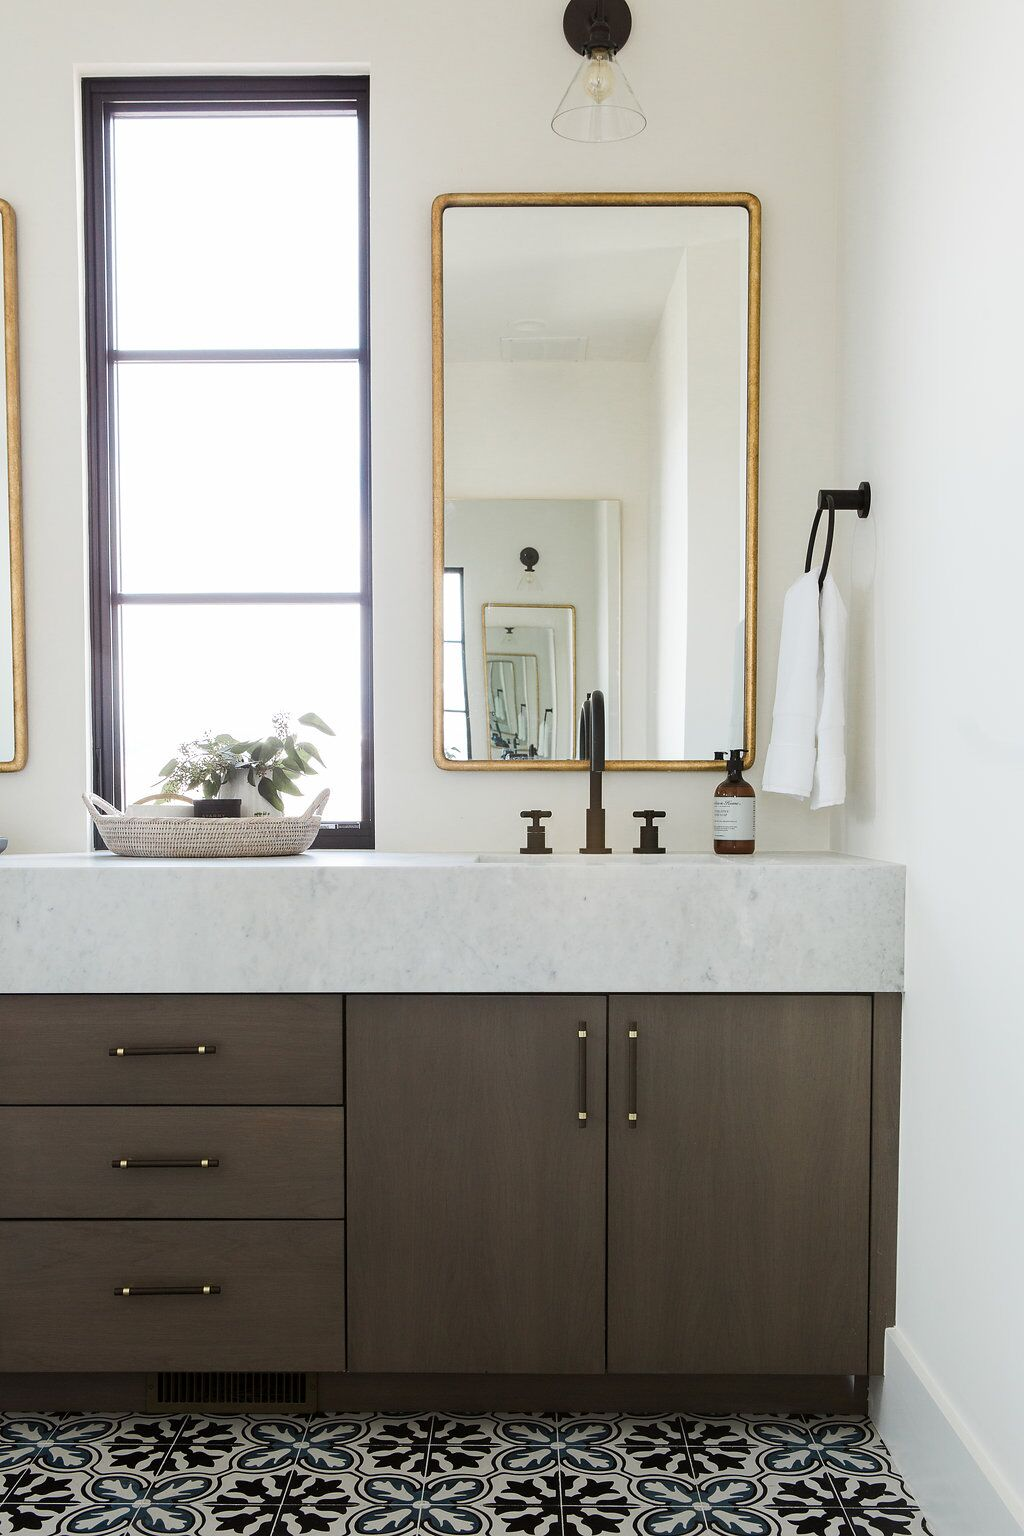 Large vanity and counter in master bathroom